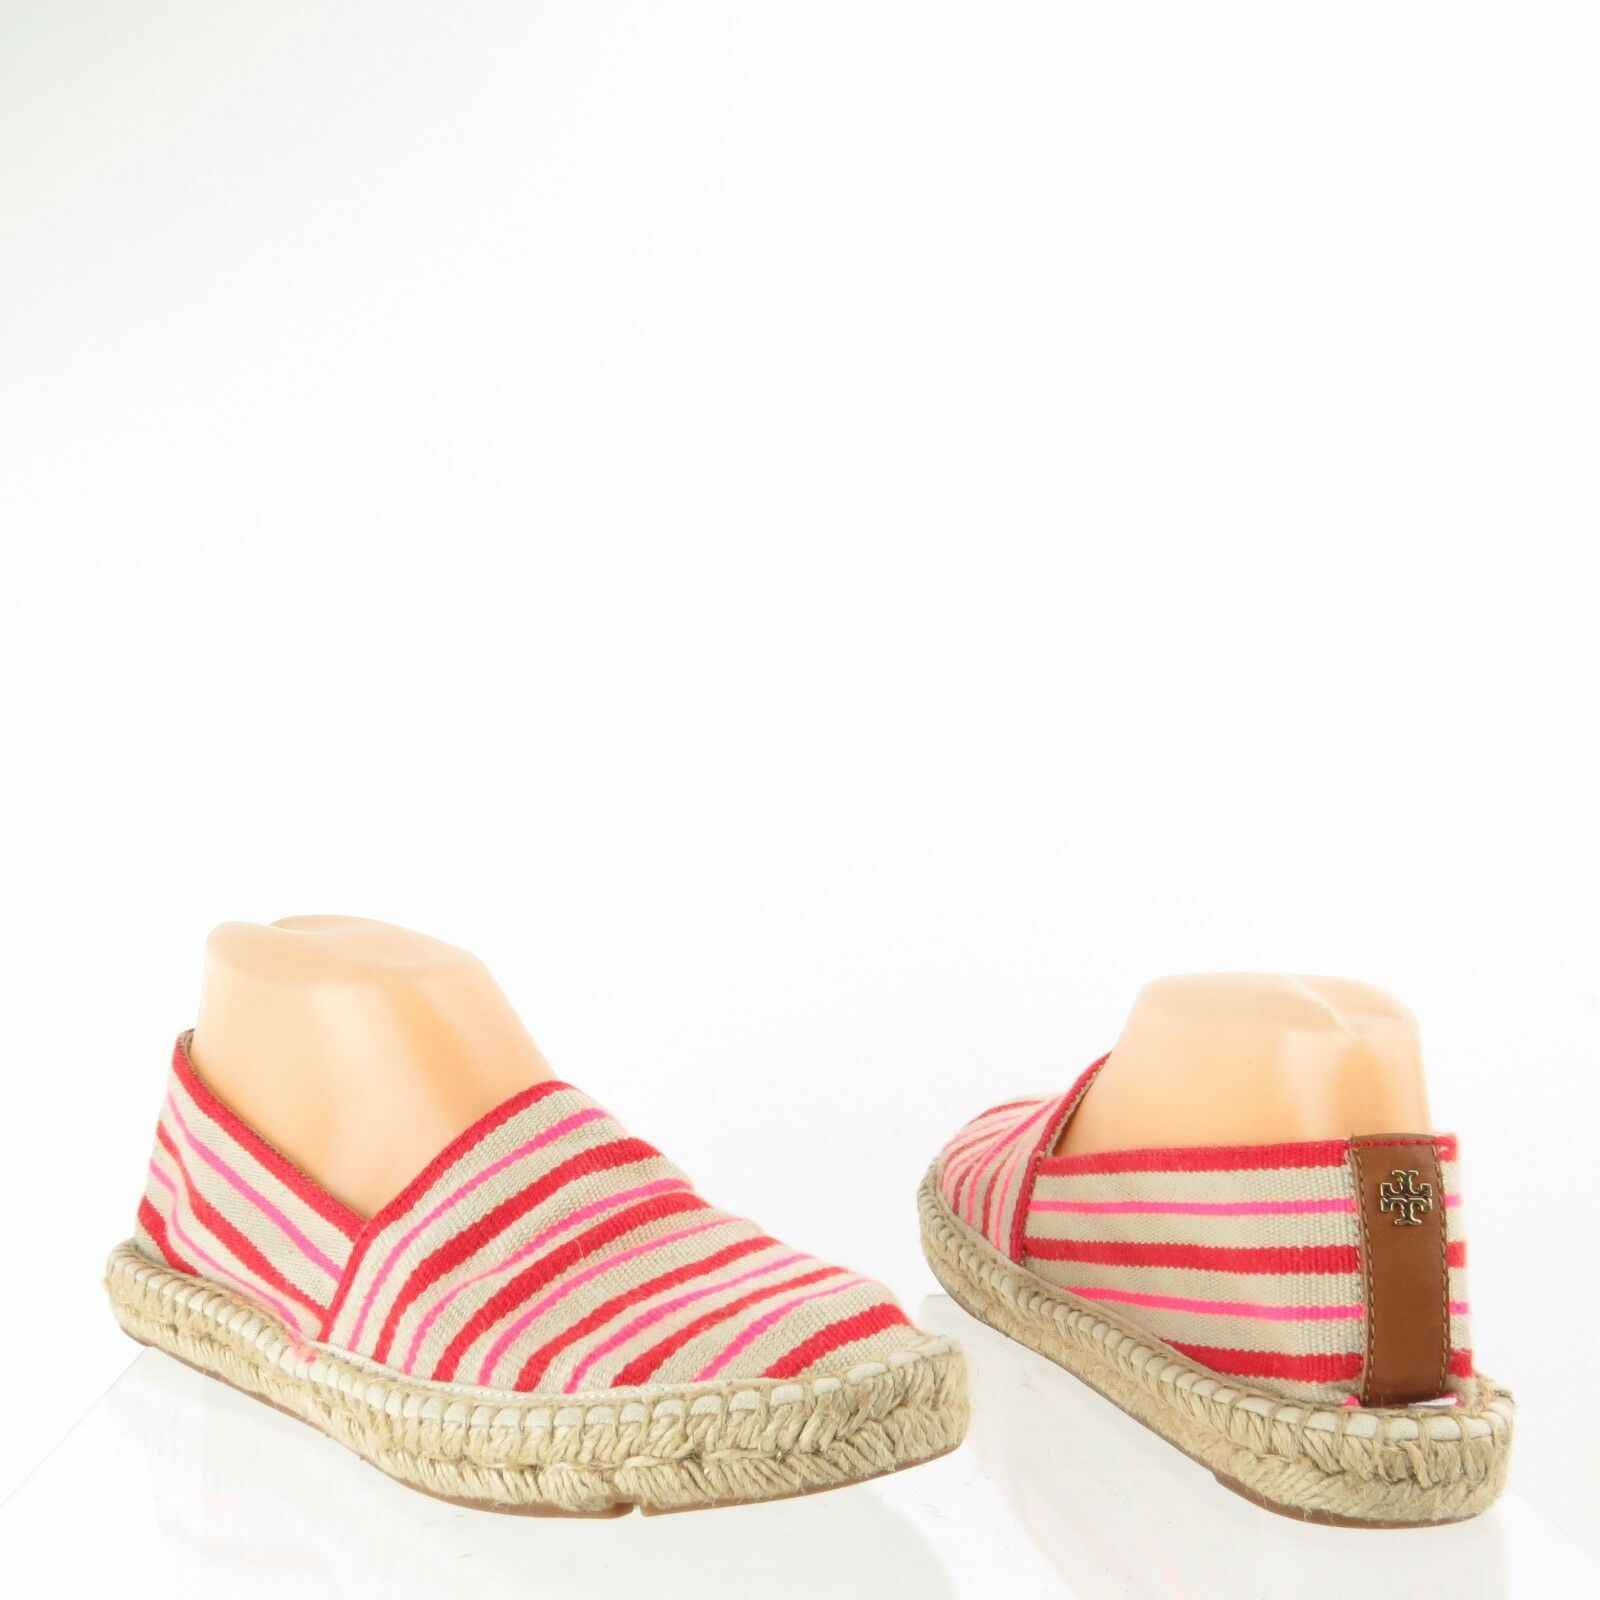 Women's Tory Burch shoes Red Striped Canvas Espadrille Flats Size 7 M